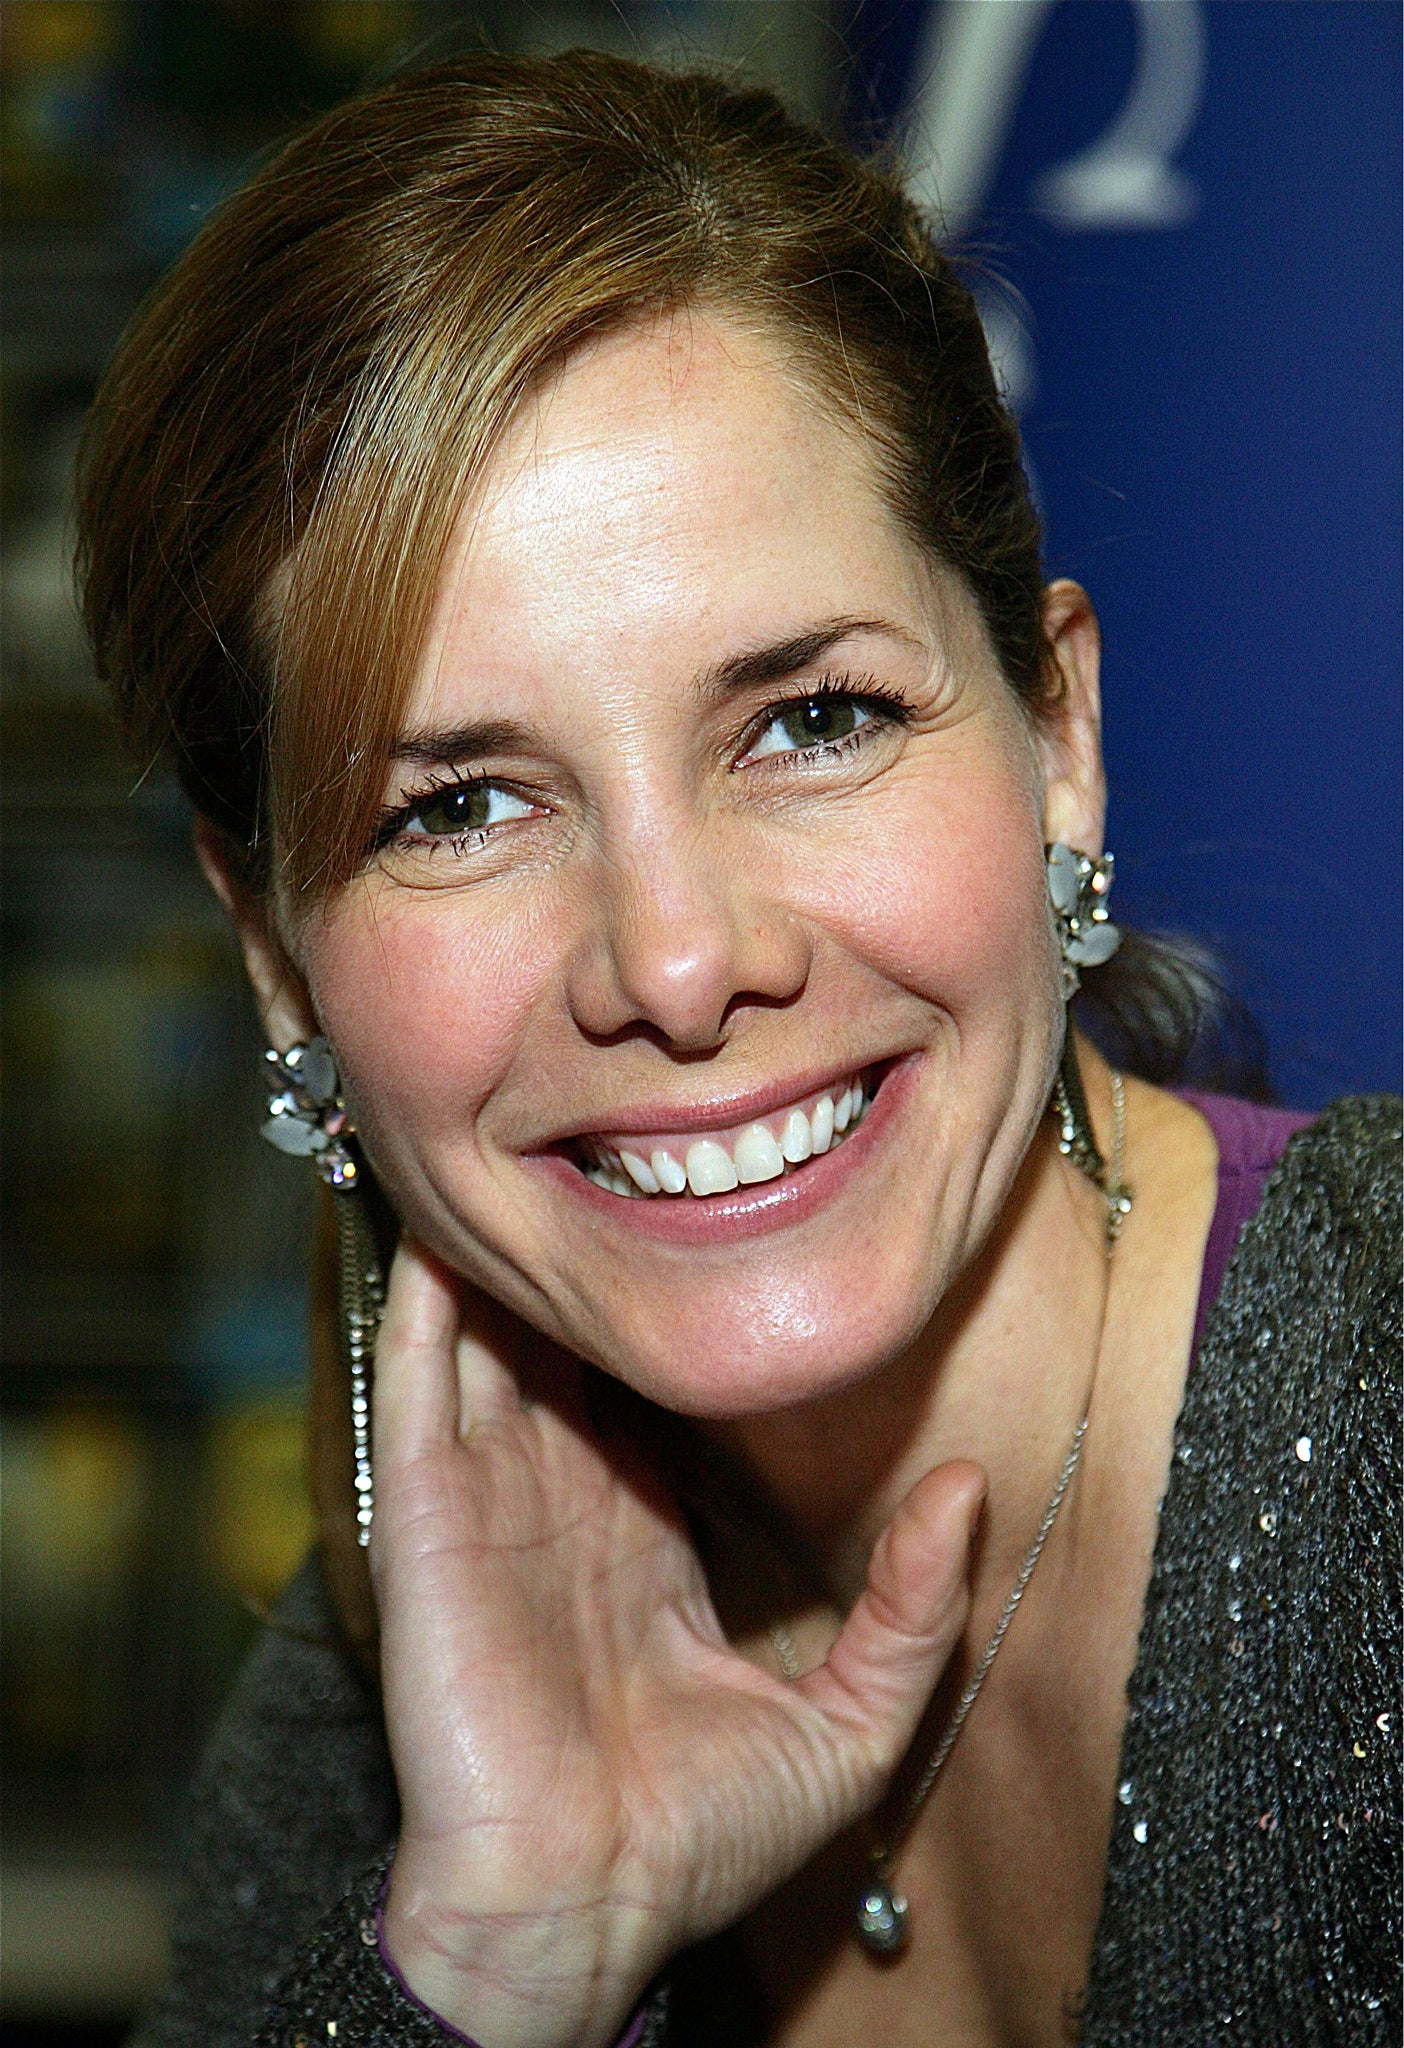 Samsclub Credit Login >> Darcey Bussell: I want to be a more hands-on Strictly Come Dancing judge | The Independent